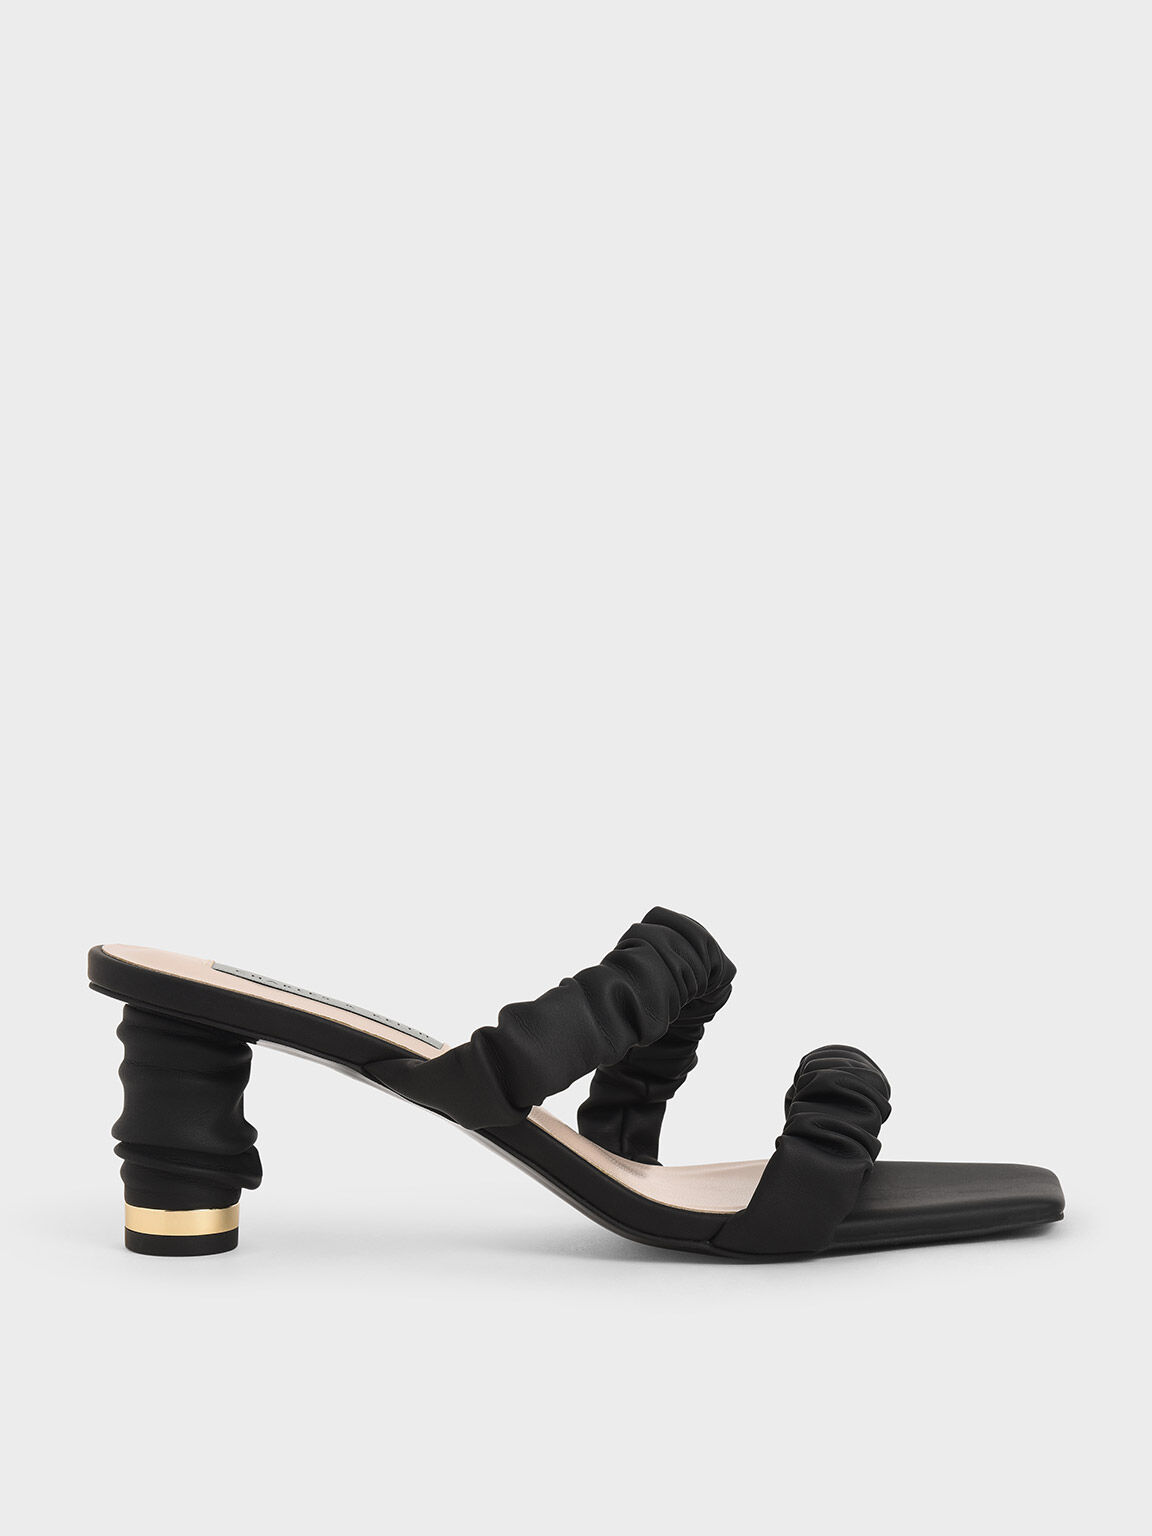 Ruched Strap Mules, Black, hi-res